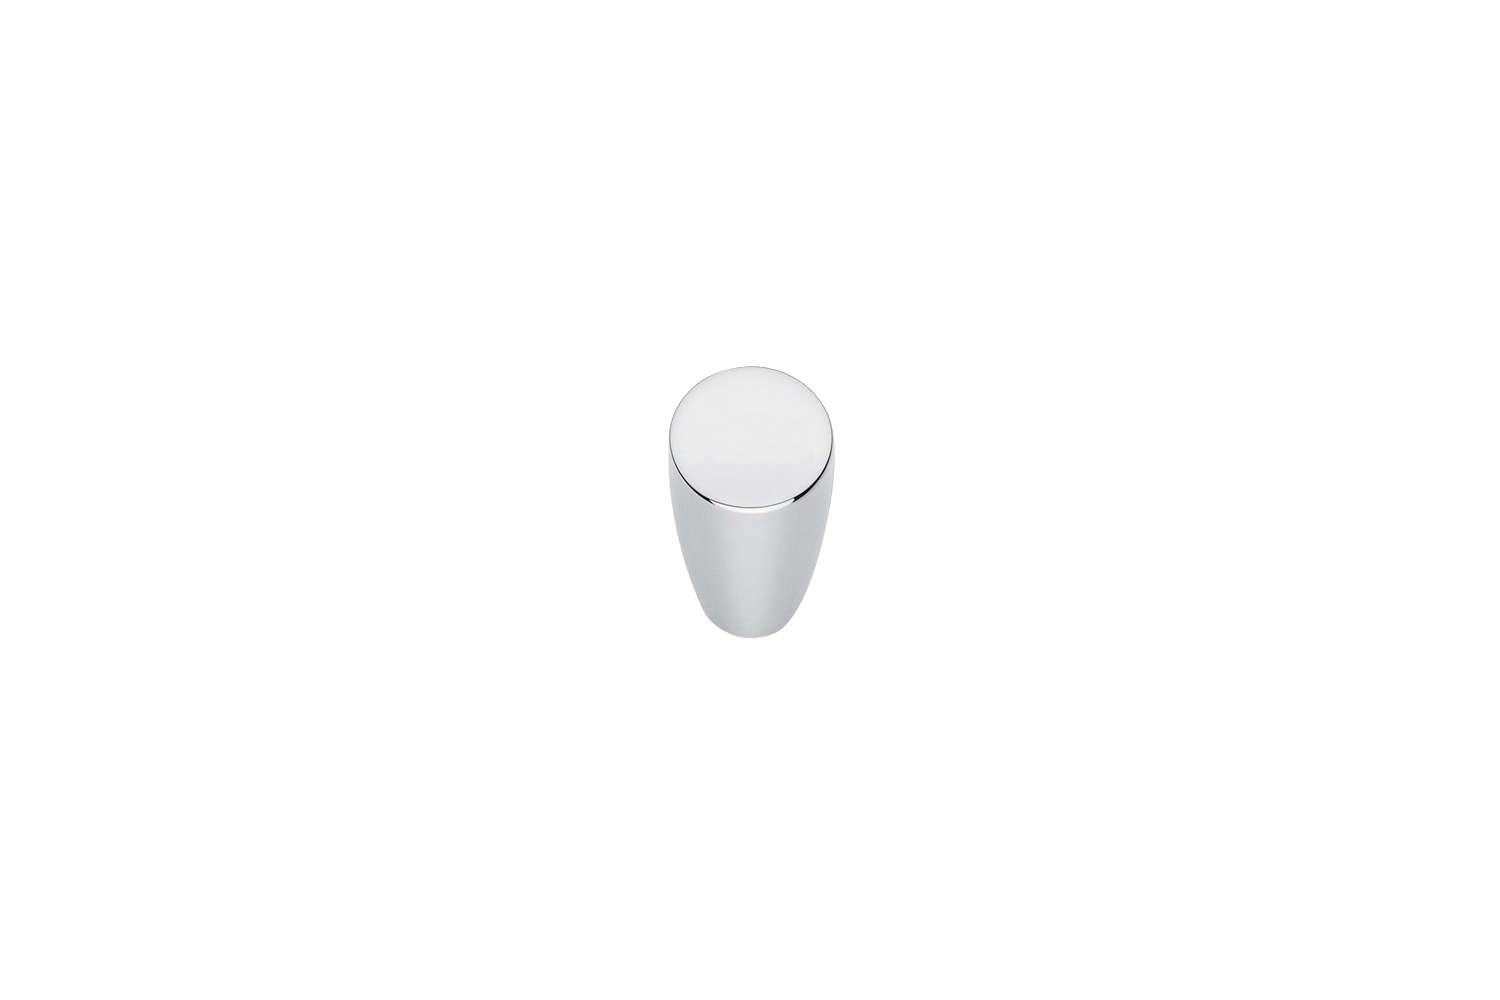 the valli & valli forges cabinet knob (vnv b\239c \26) is \$8 at the hardwa 11